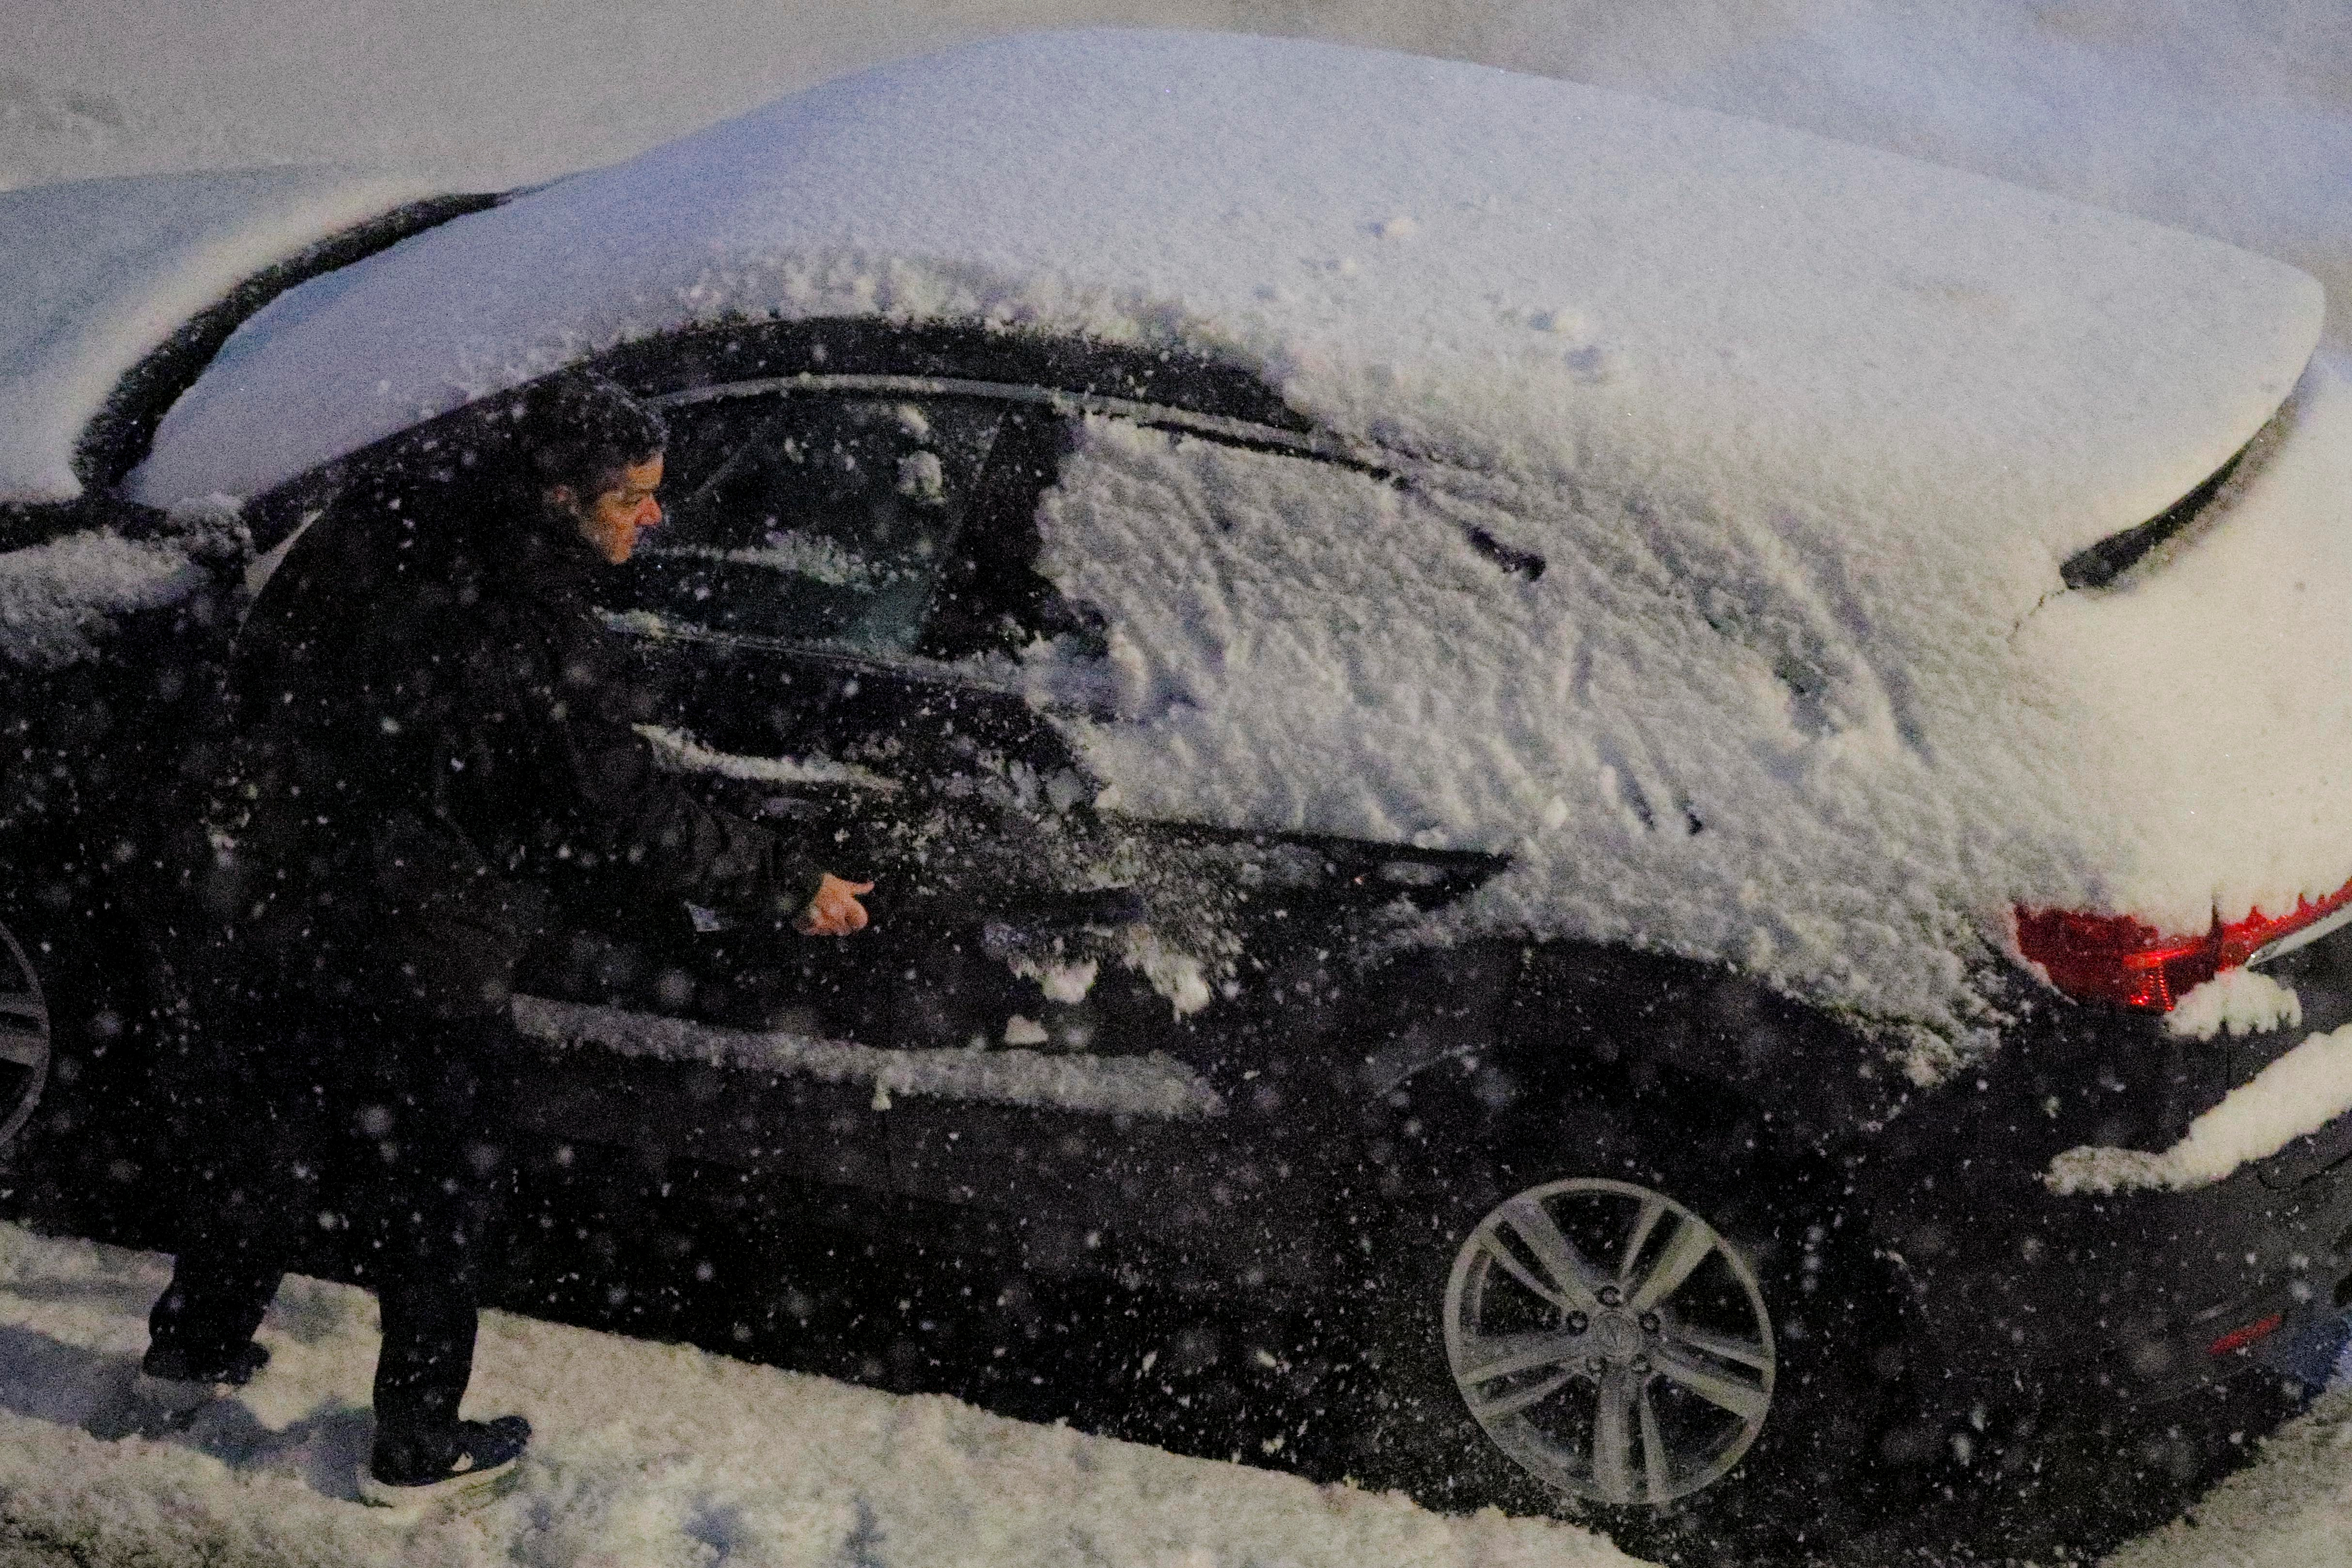 A driver clears the snow off his car during an early season snowfall in the Boston suburb of Medford, Massachusetts, U.S., November 15, 2018. REUTERS/Brian Snyder